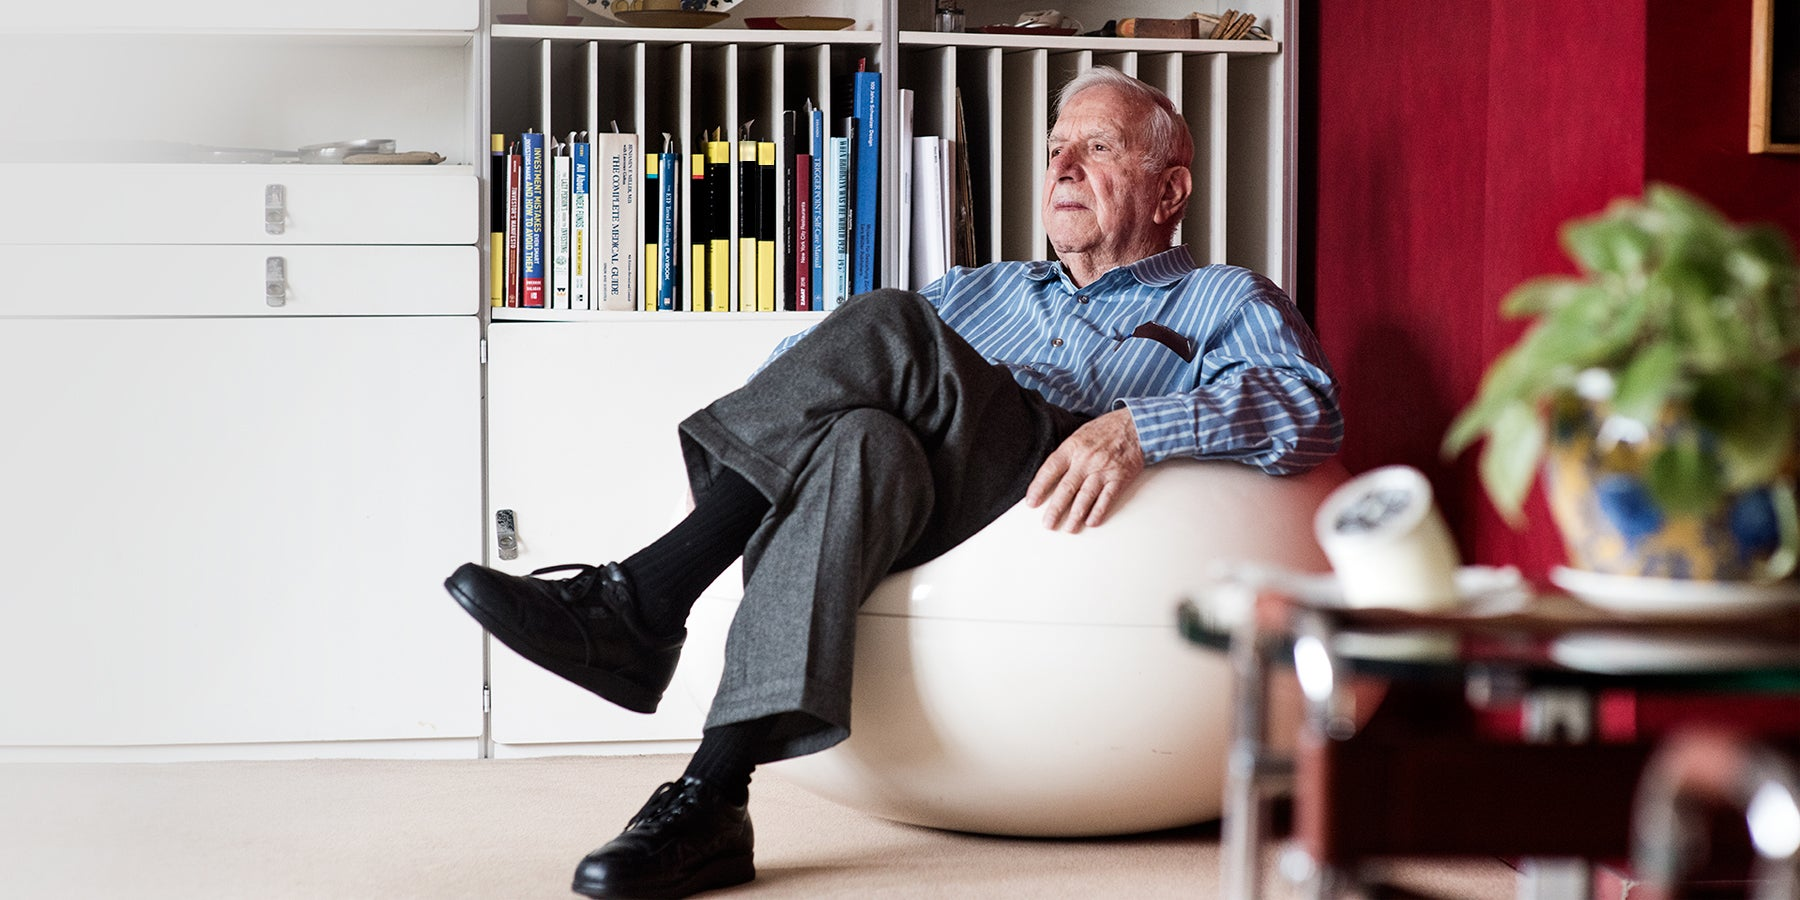 Meet The Man Who Introduced Modern European Design To The U.S.